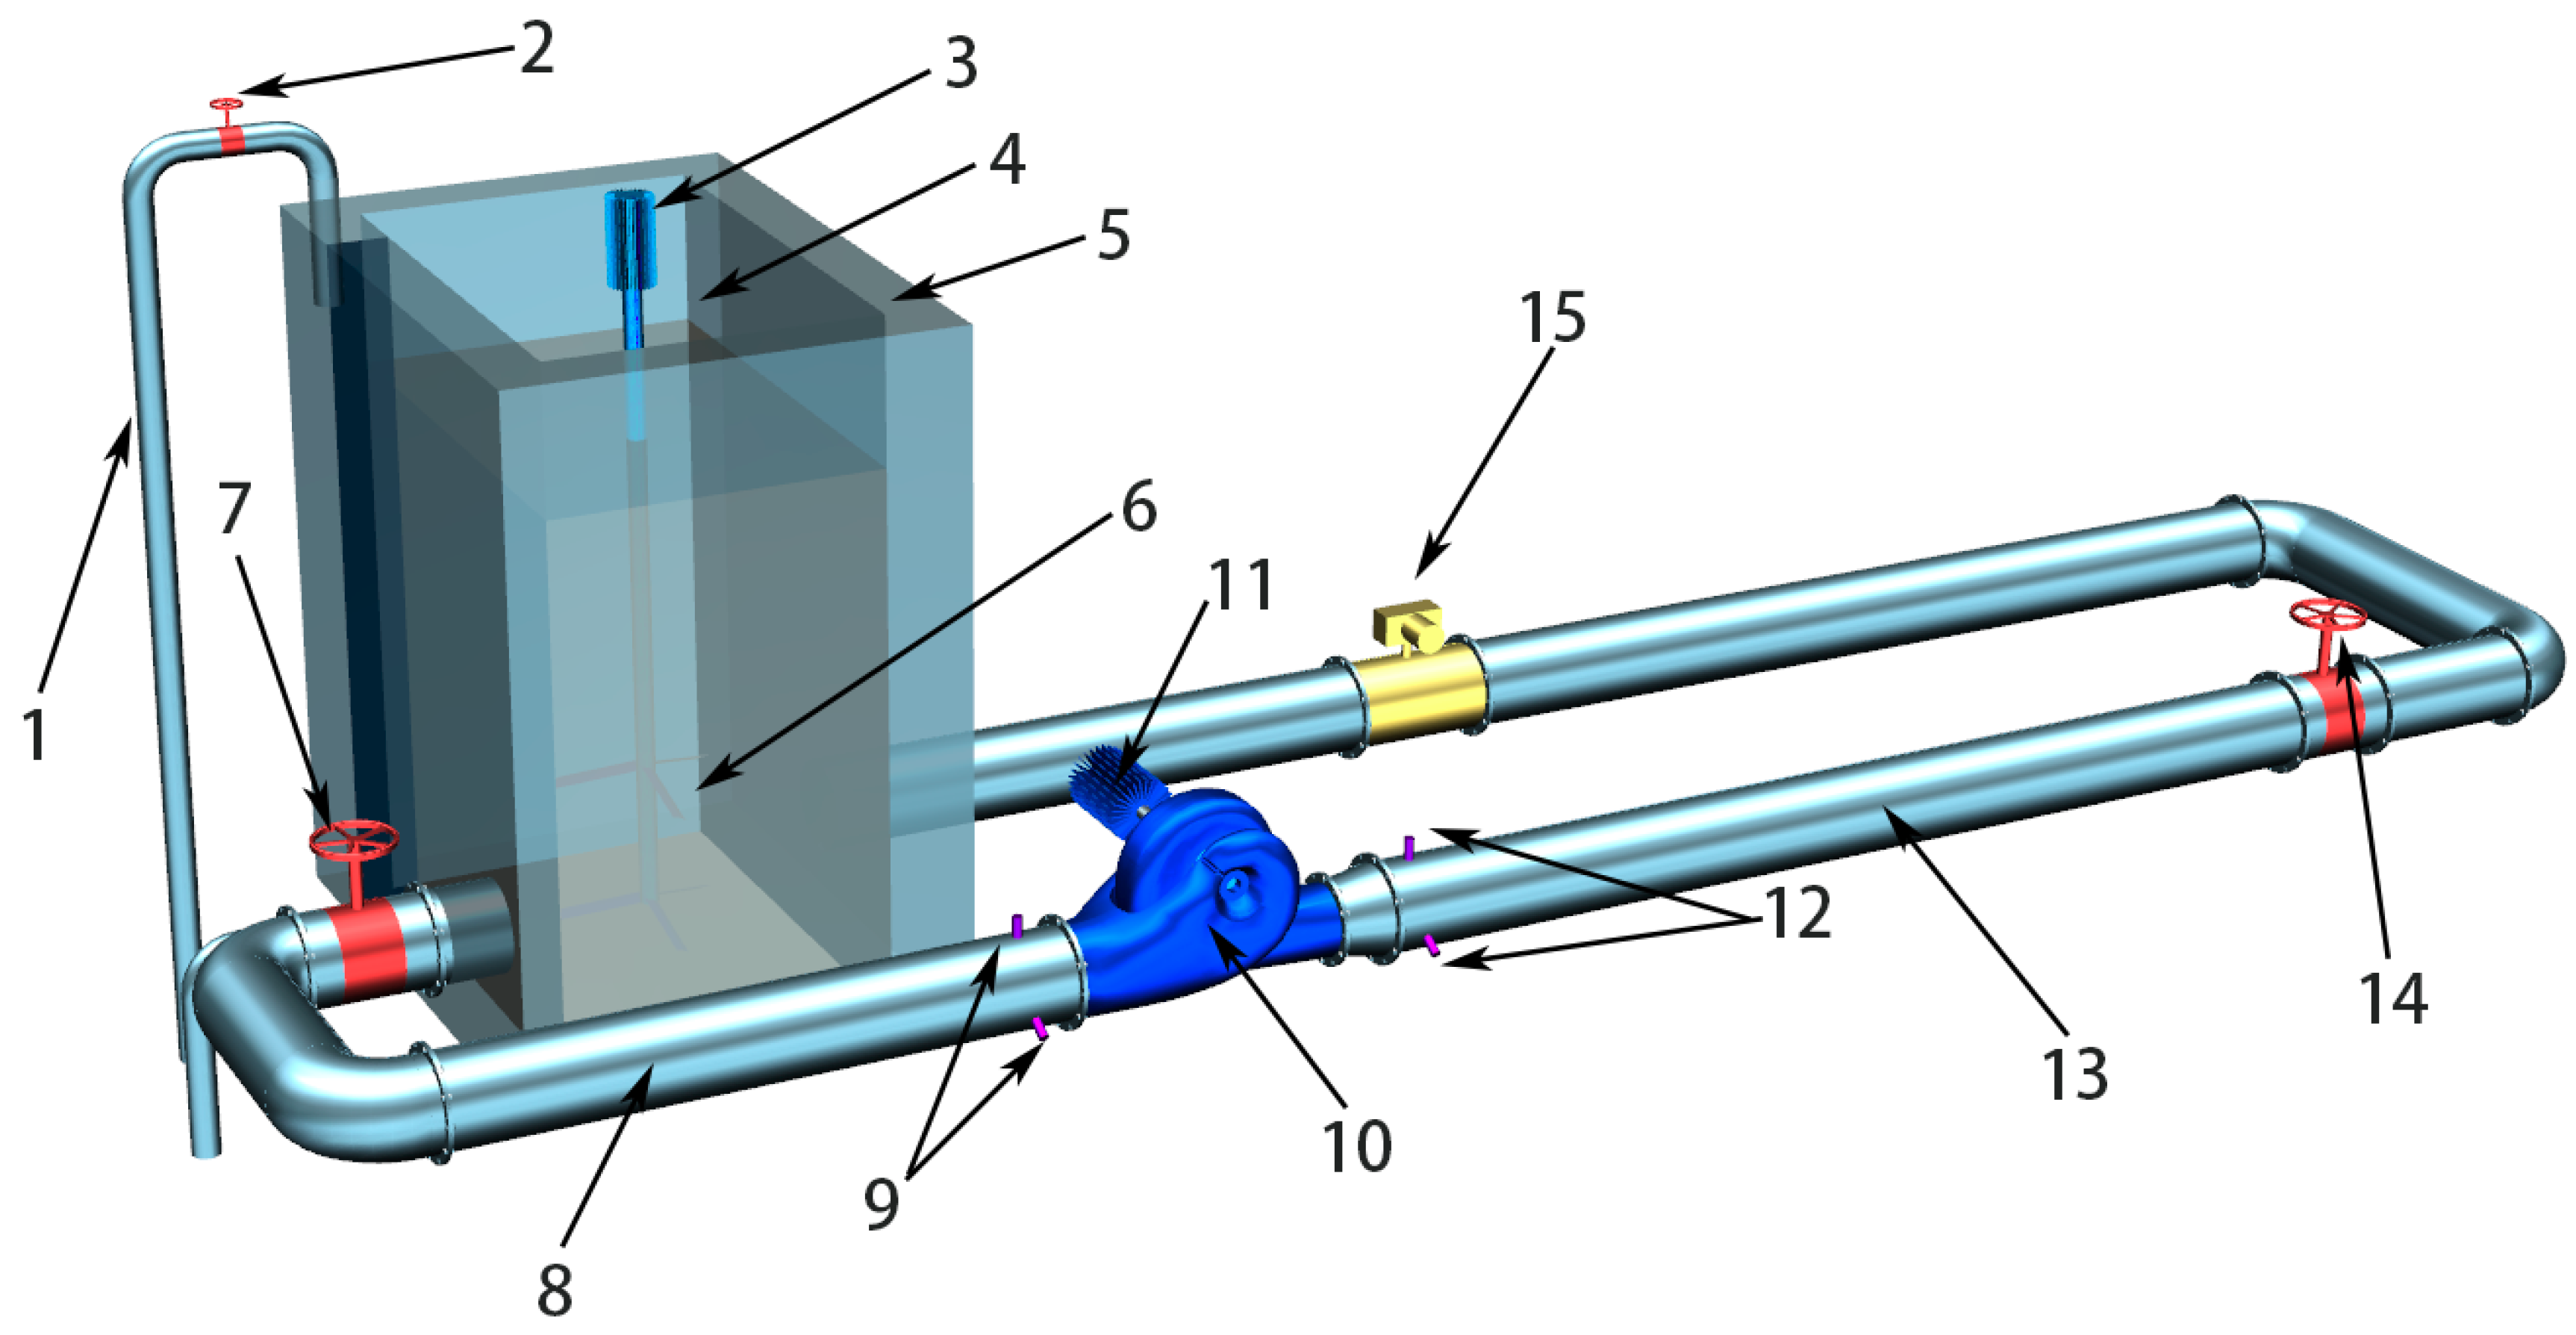 Energies Free Full Text Alternative Design Of Double Suction Centrifugal Pump To Reduce The Effects Of Silt Erosion Html